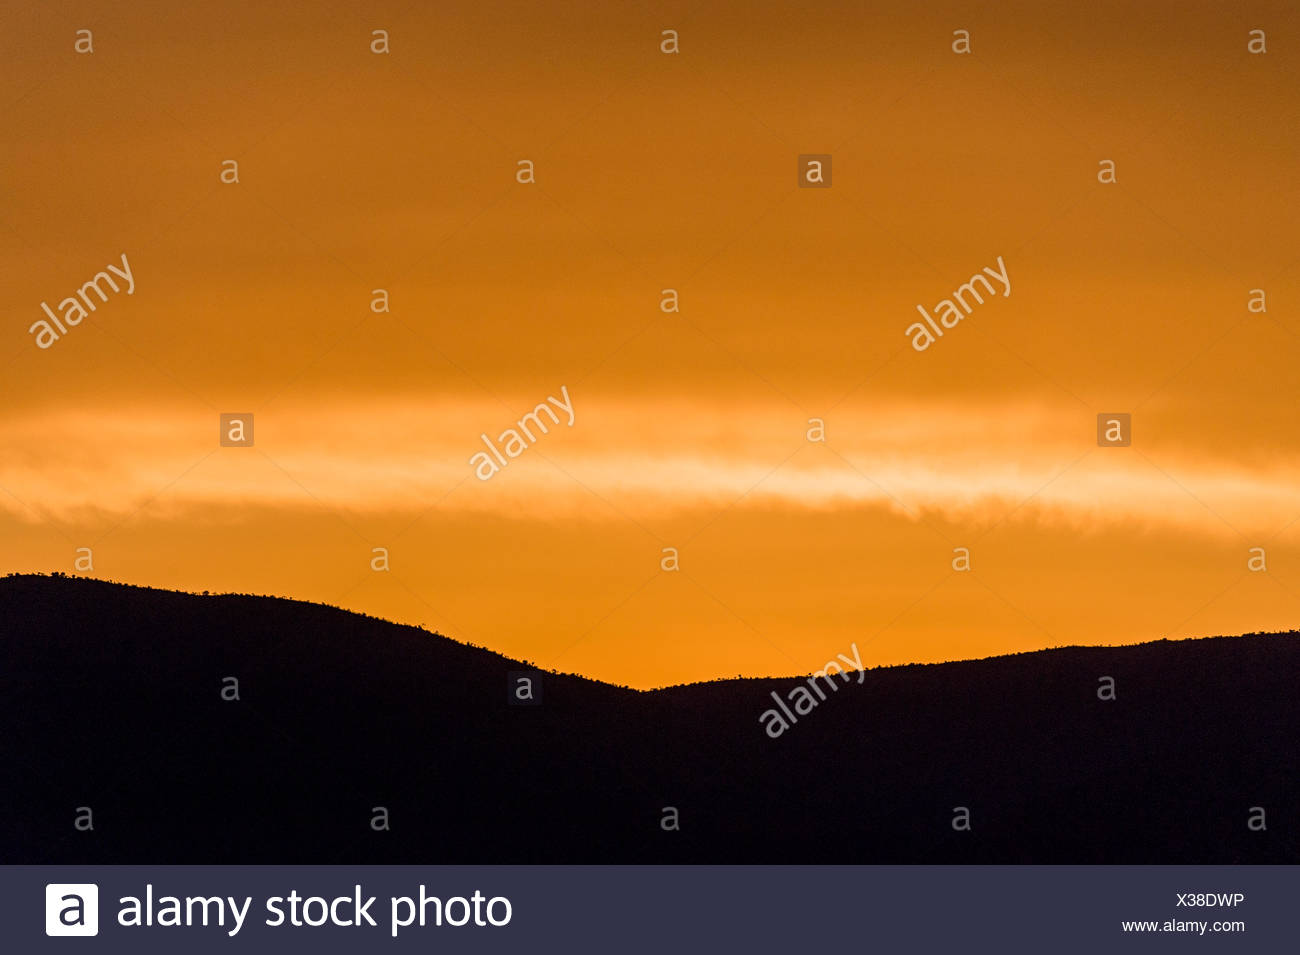 An orange sunset afterglow over a silhouette of a mountain ridge line. - Stock Image